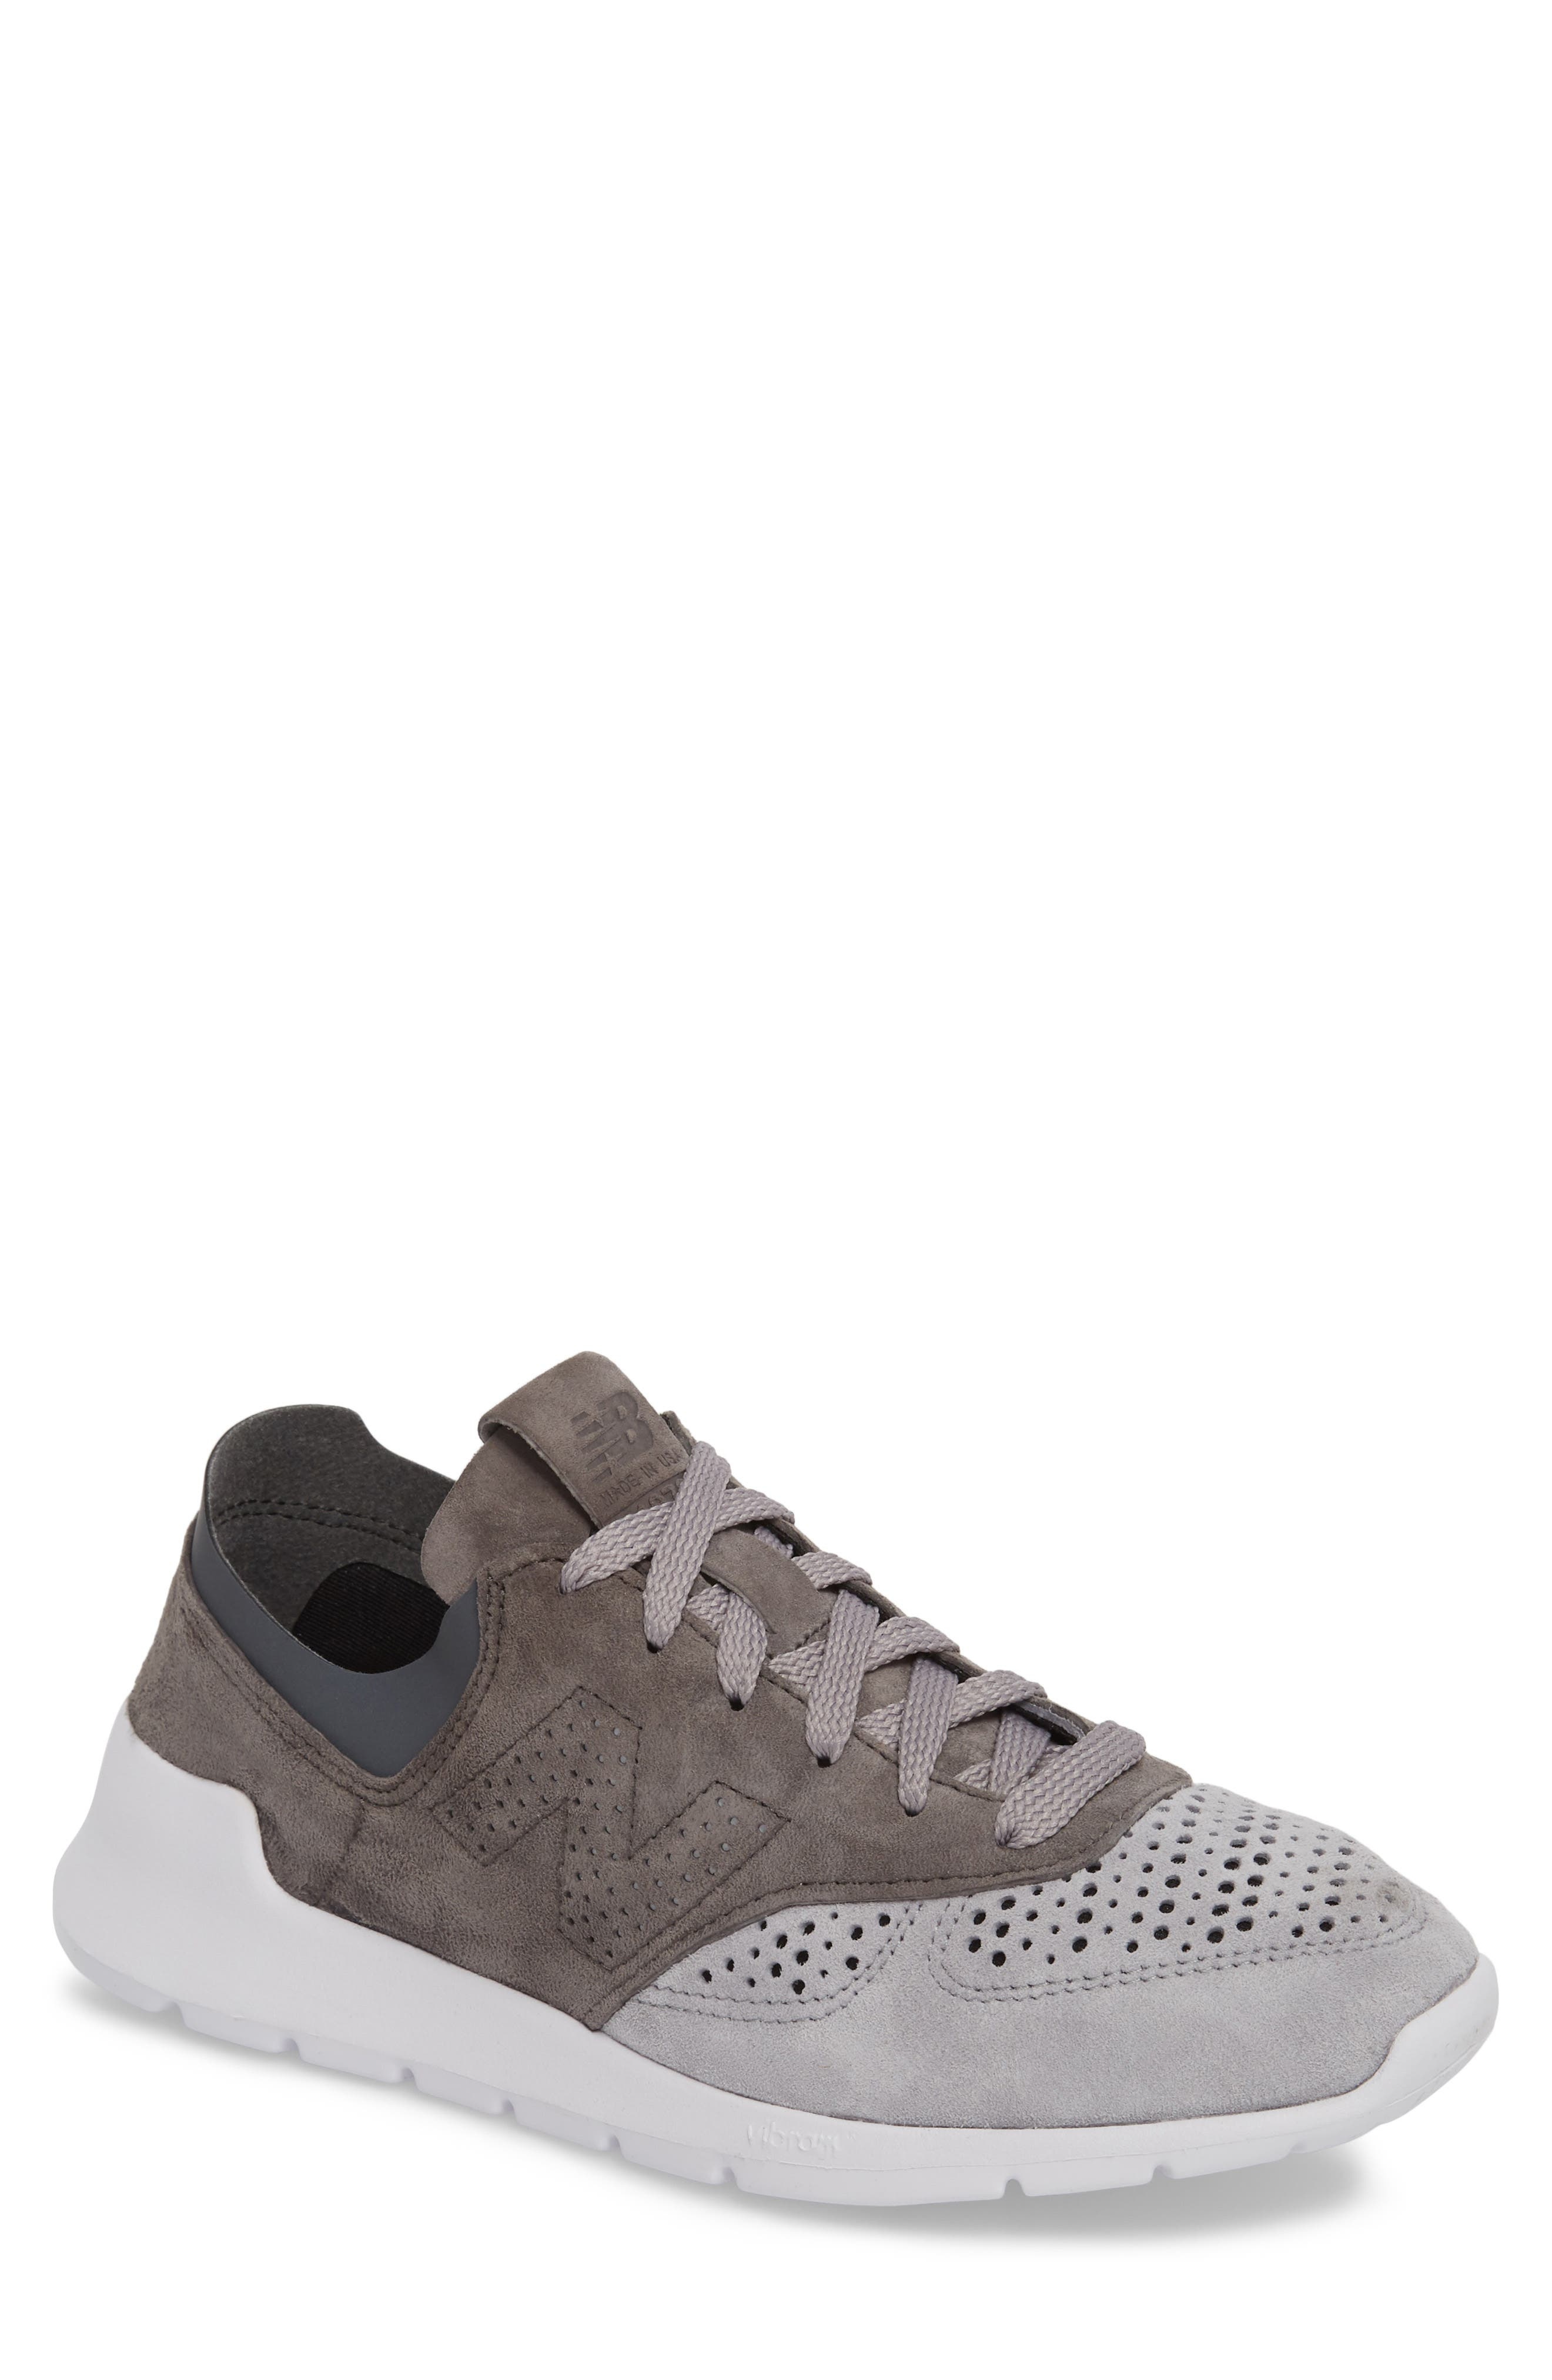 1978 Perforated Sneaker,                         Main,                         color,